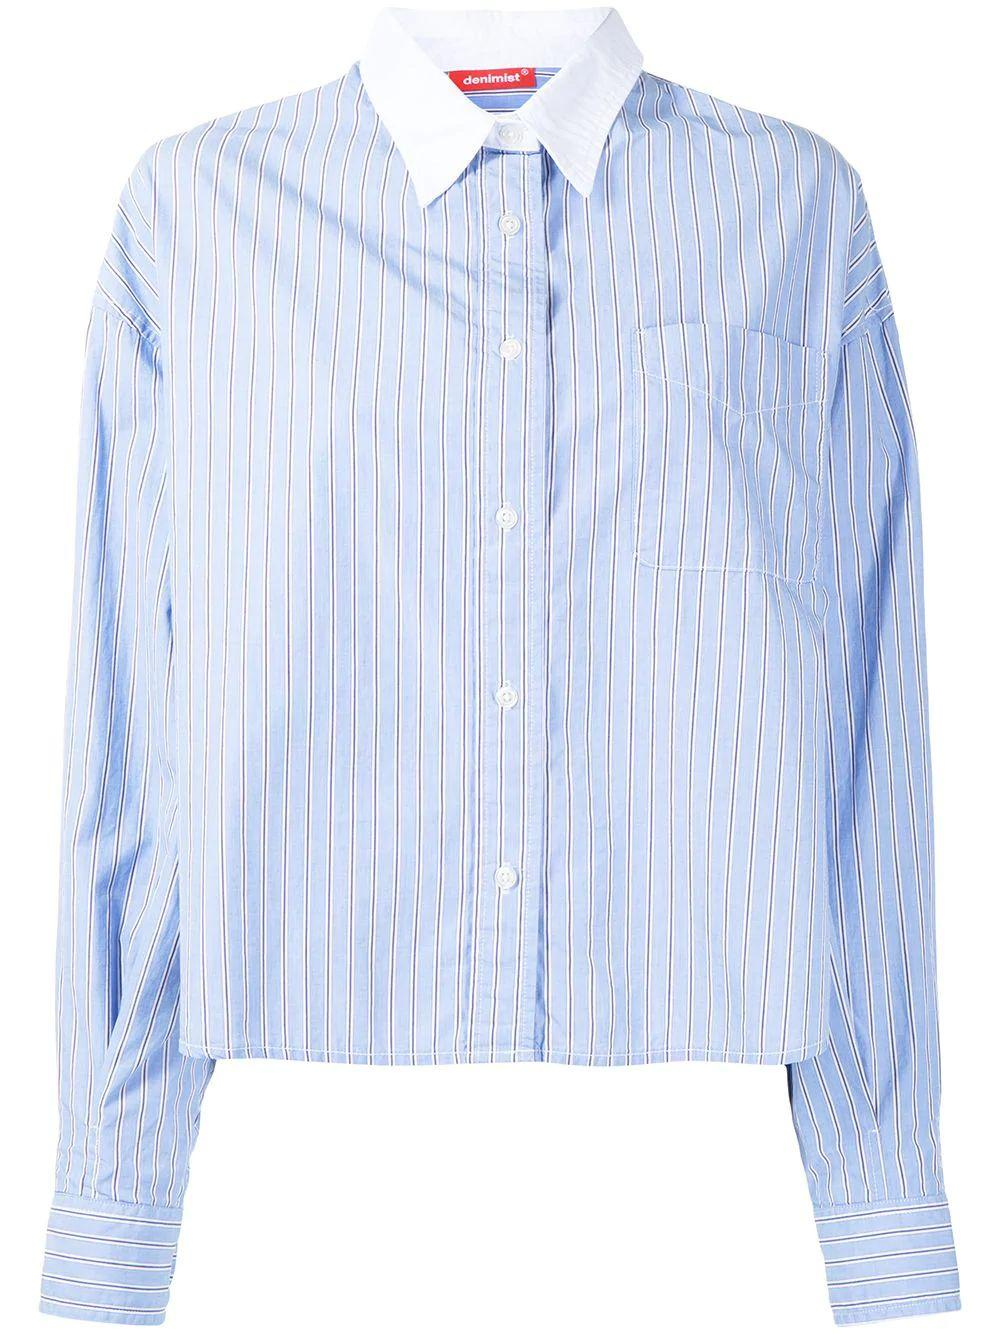 Mayfield Boxy Button Down